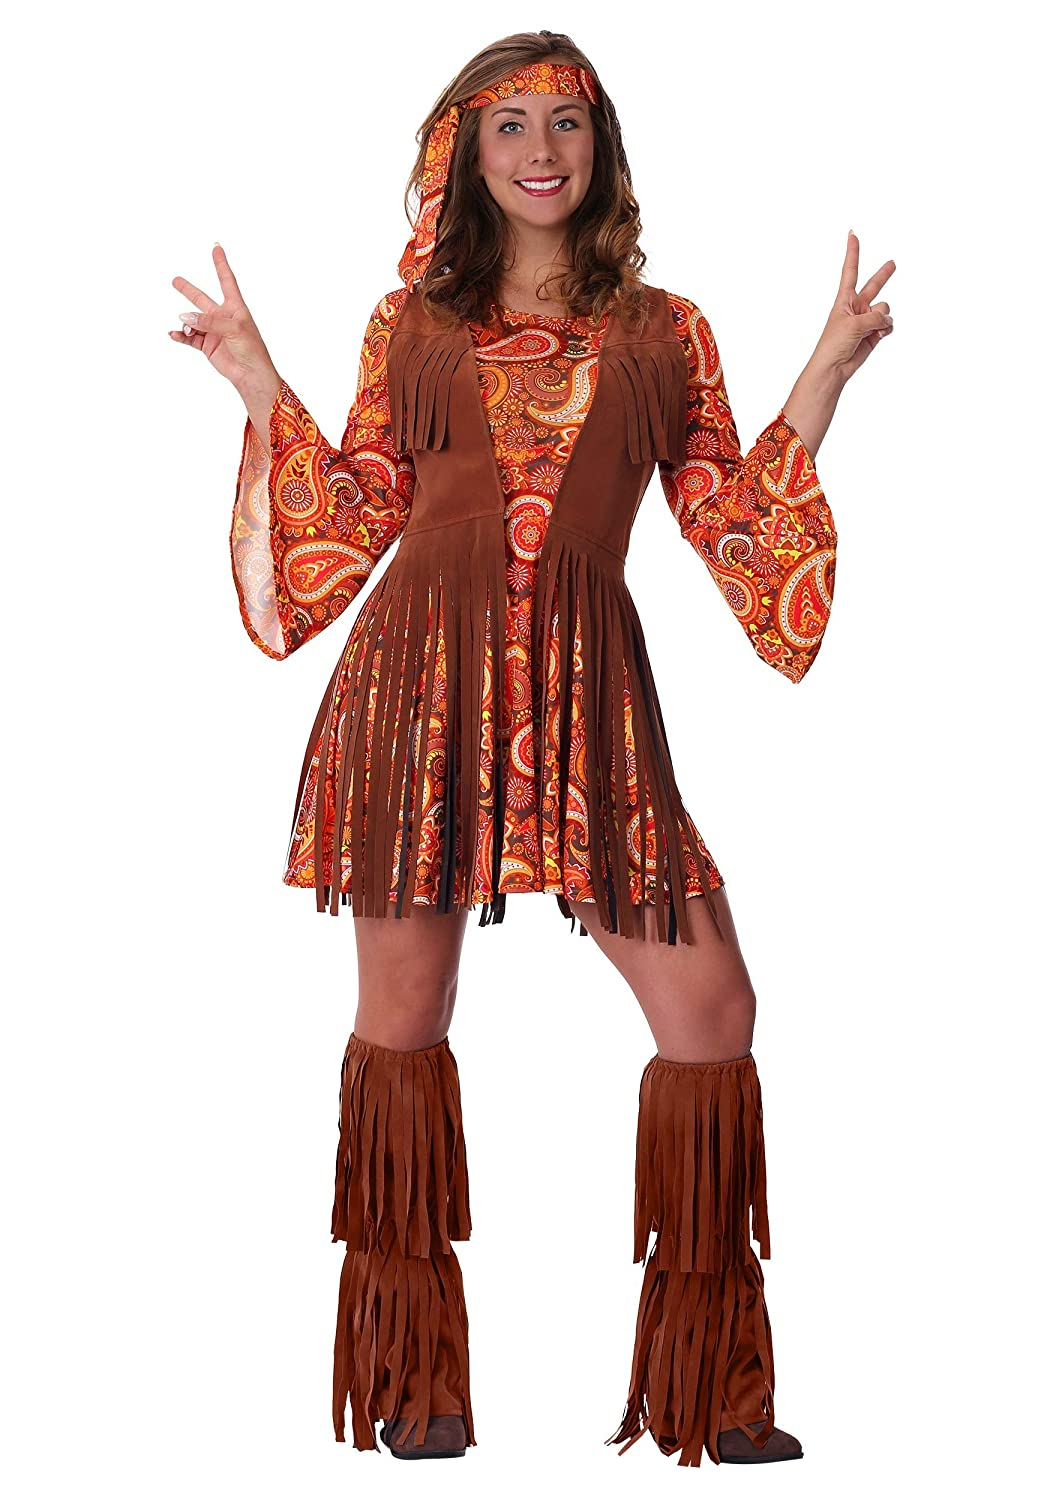 60s Costumes: Hippie, Go Go Dancer, Flower Child, Mod Style Womens Fringe Hippie Costume $44.99 AT vintagedancer.com